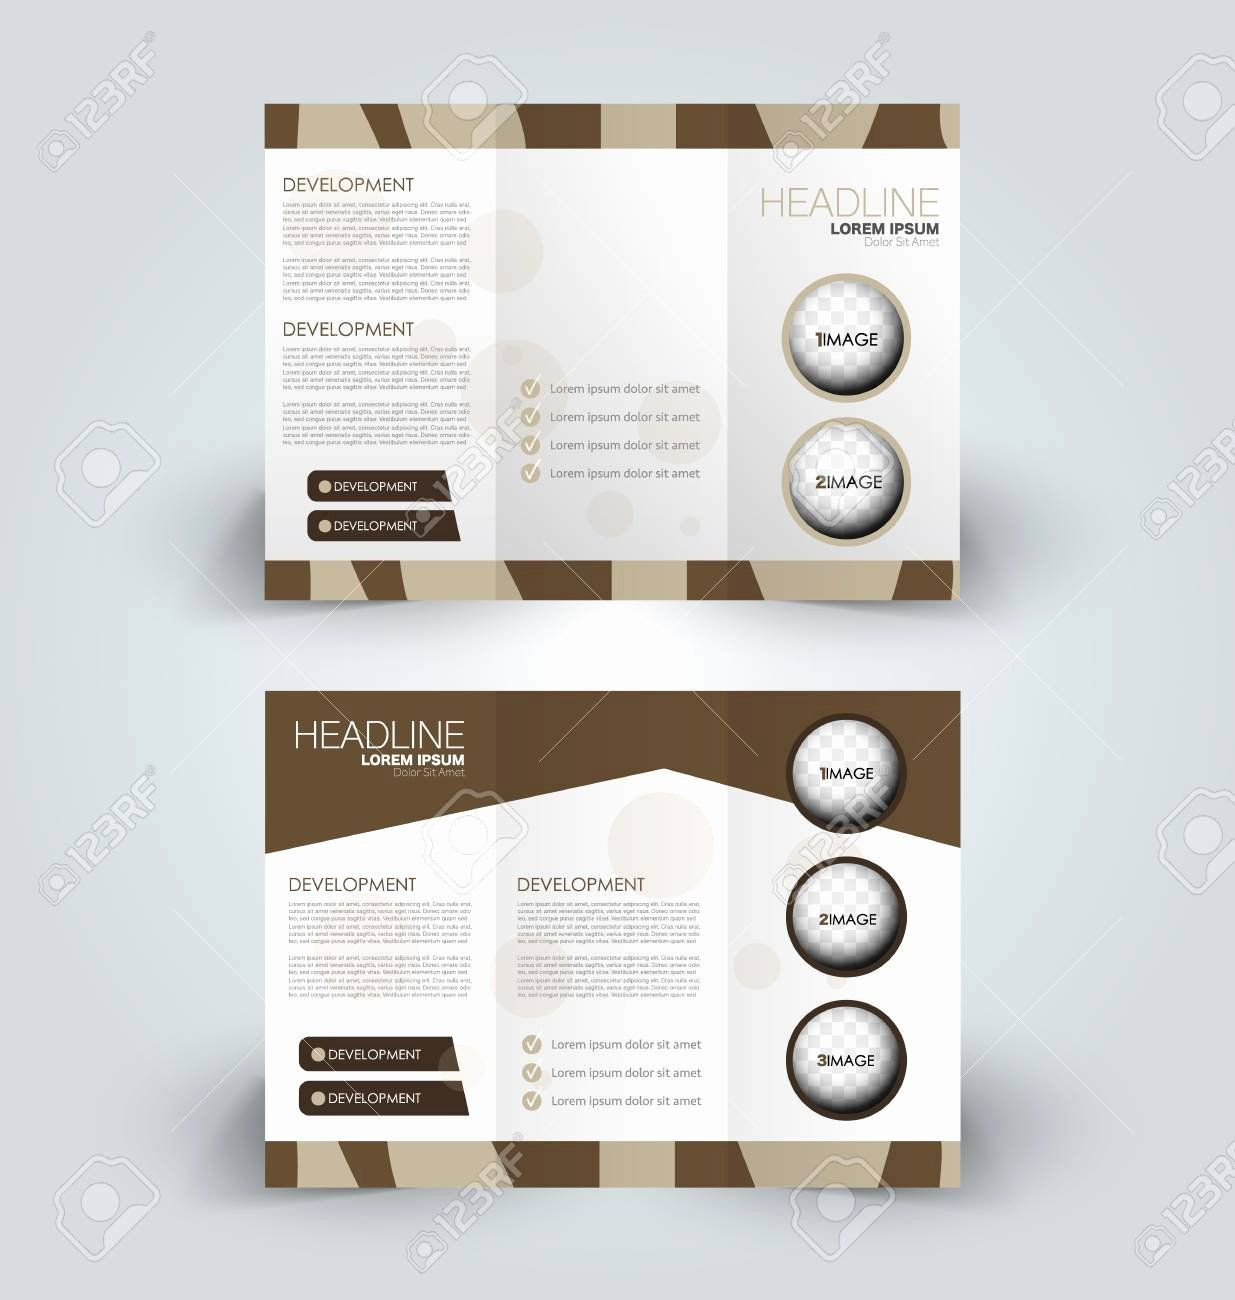 Folded Business Cards Template Beautiful Brochure Mock Up Design Template For Business Education Advertisement Folded Business Cards Card Template Templates